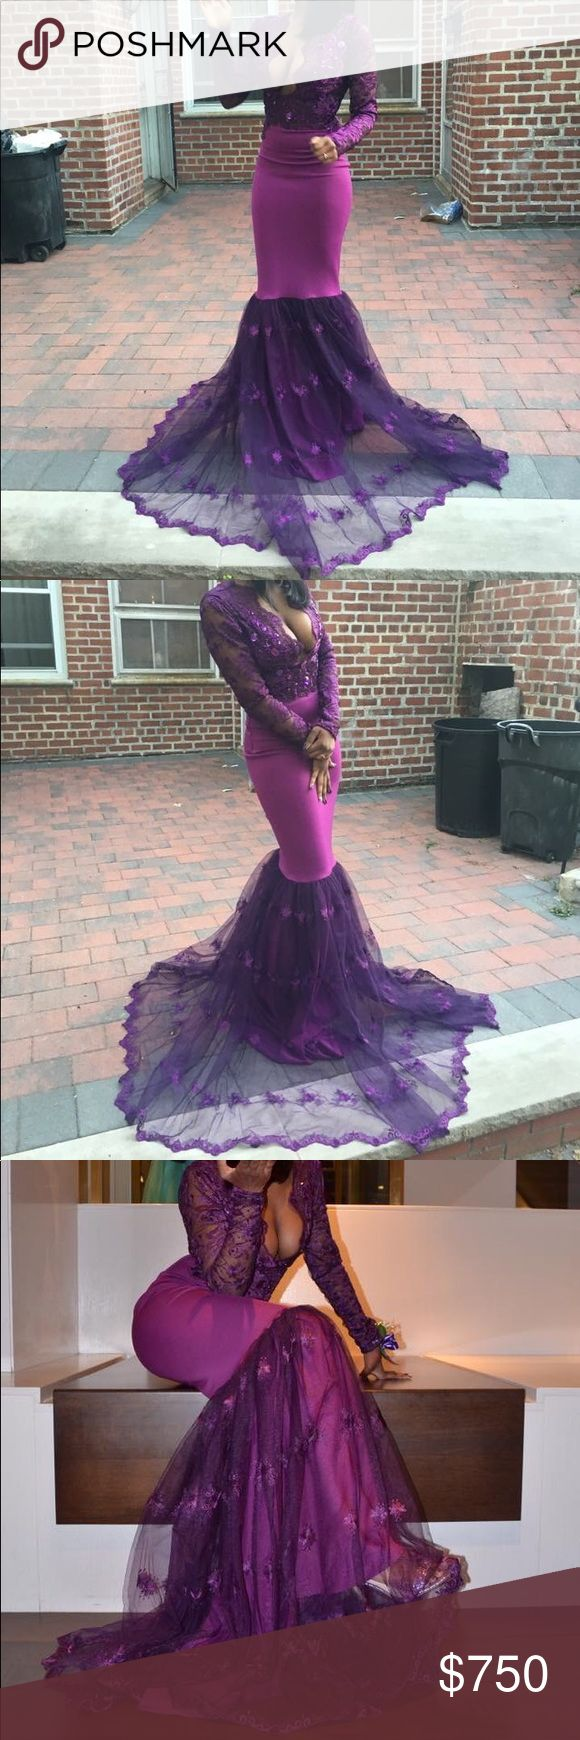 Purple prom dress I'm selling my old high school prom dress. It's custom made (yes I won prom queen😂). Any questions please ask. At the time. I was 141-150 pounds. Waist and length size was 28/32. The waist is very stretchy.  Chest 36C. If you need any more pictures ask. I'm willing to hear offers. Dresses Prom